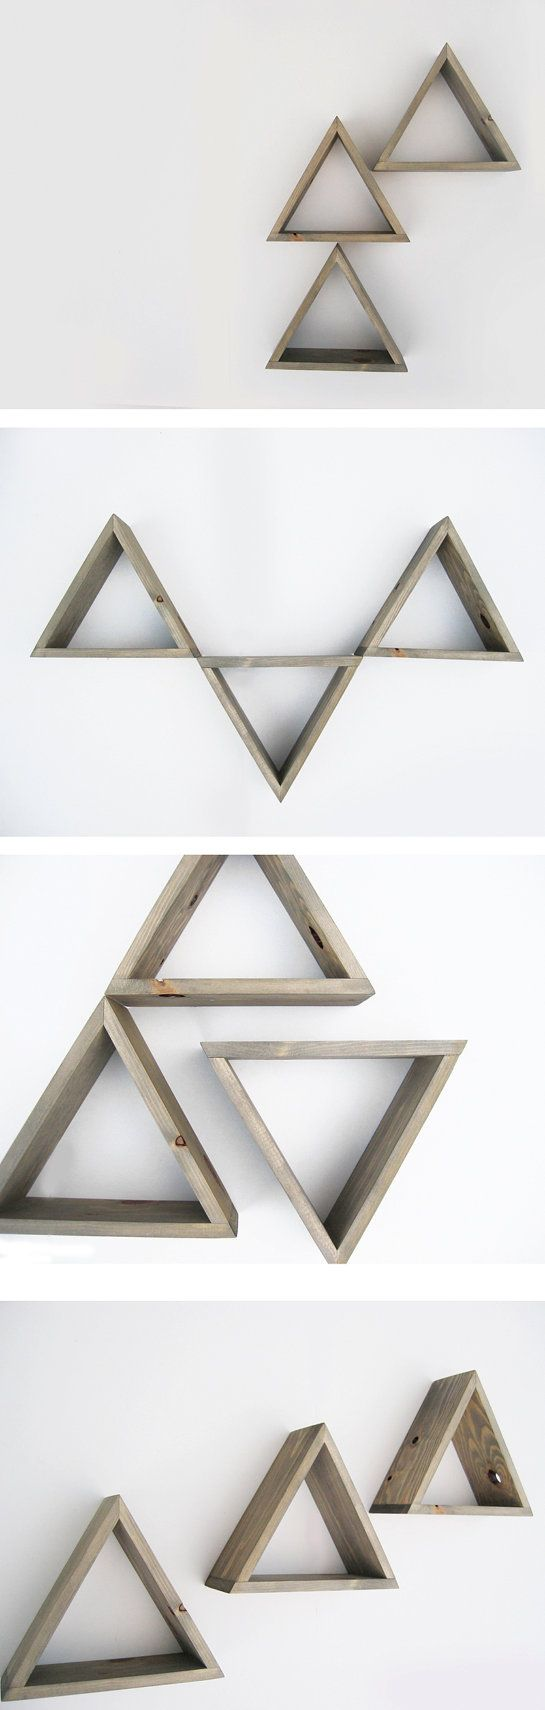 Triangle Shelf Set of 3 - Shadow box shelves - Barnwood Grey Wash - Ready to ship